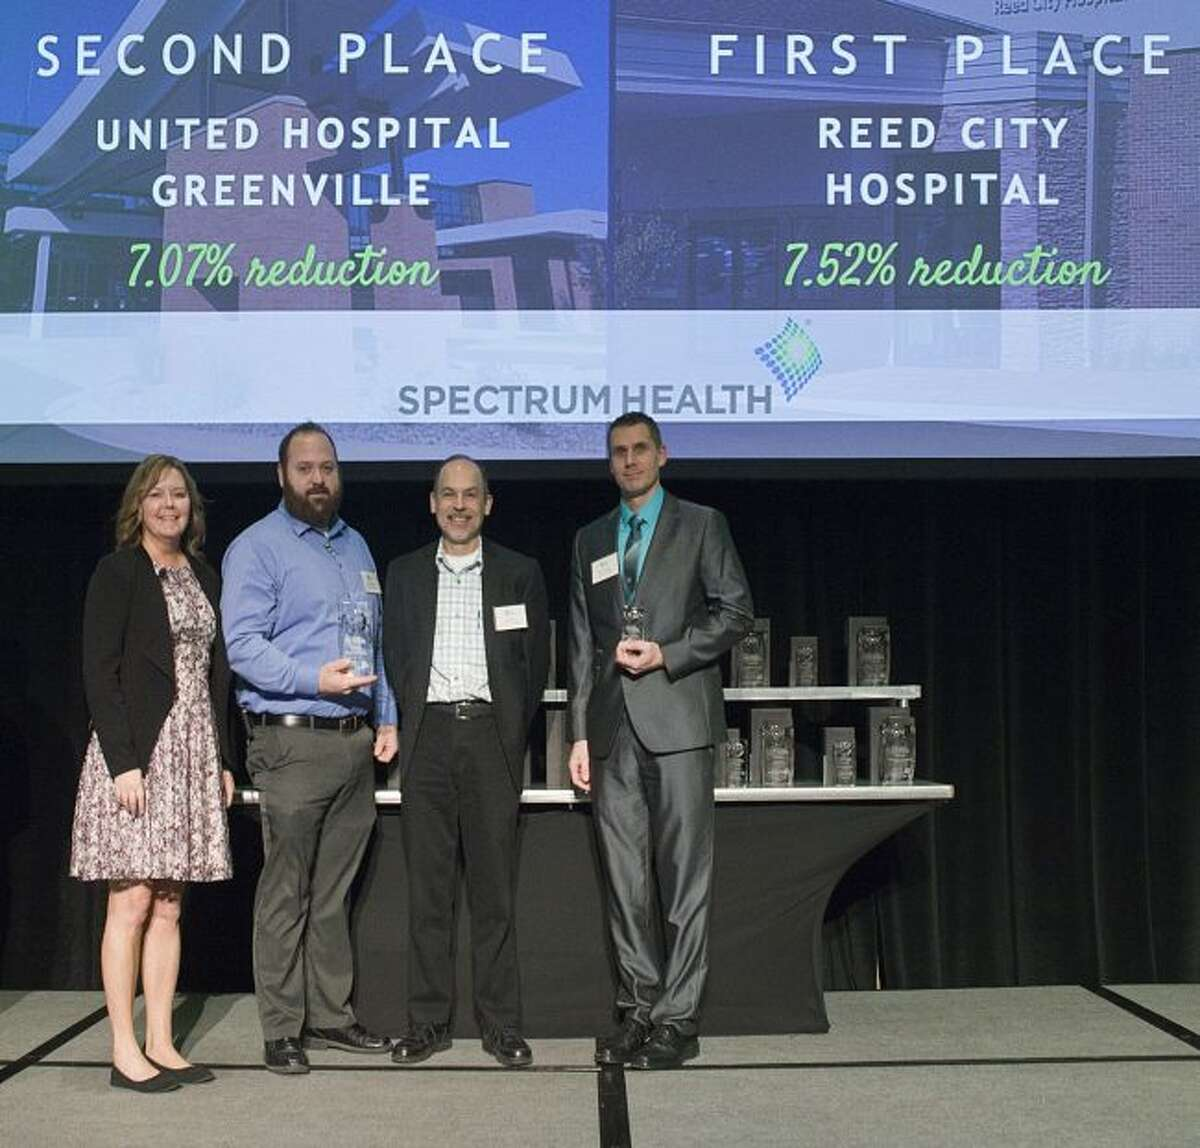 Spectrum Health Reed City Hospital won the first place award among health/hospital facilities in the 2017